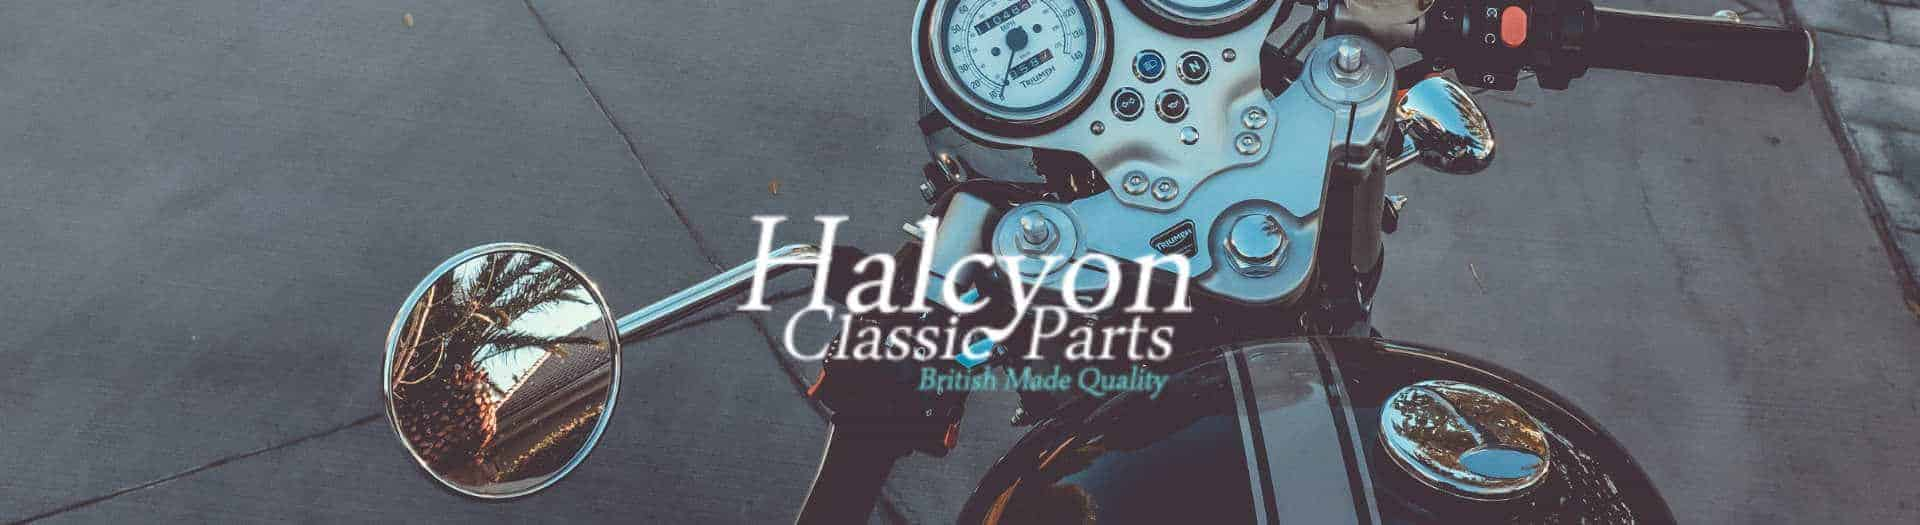 Handmade Vintage Motorcyle With Halcyon Goggles Logo Header